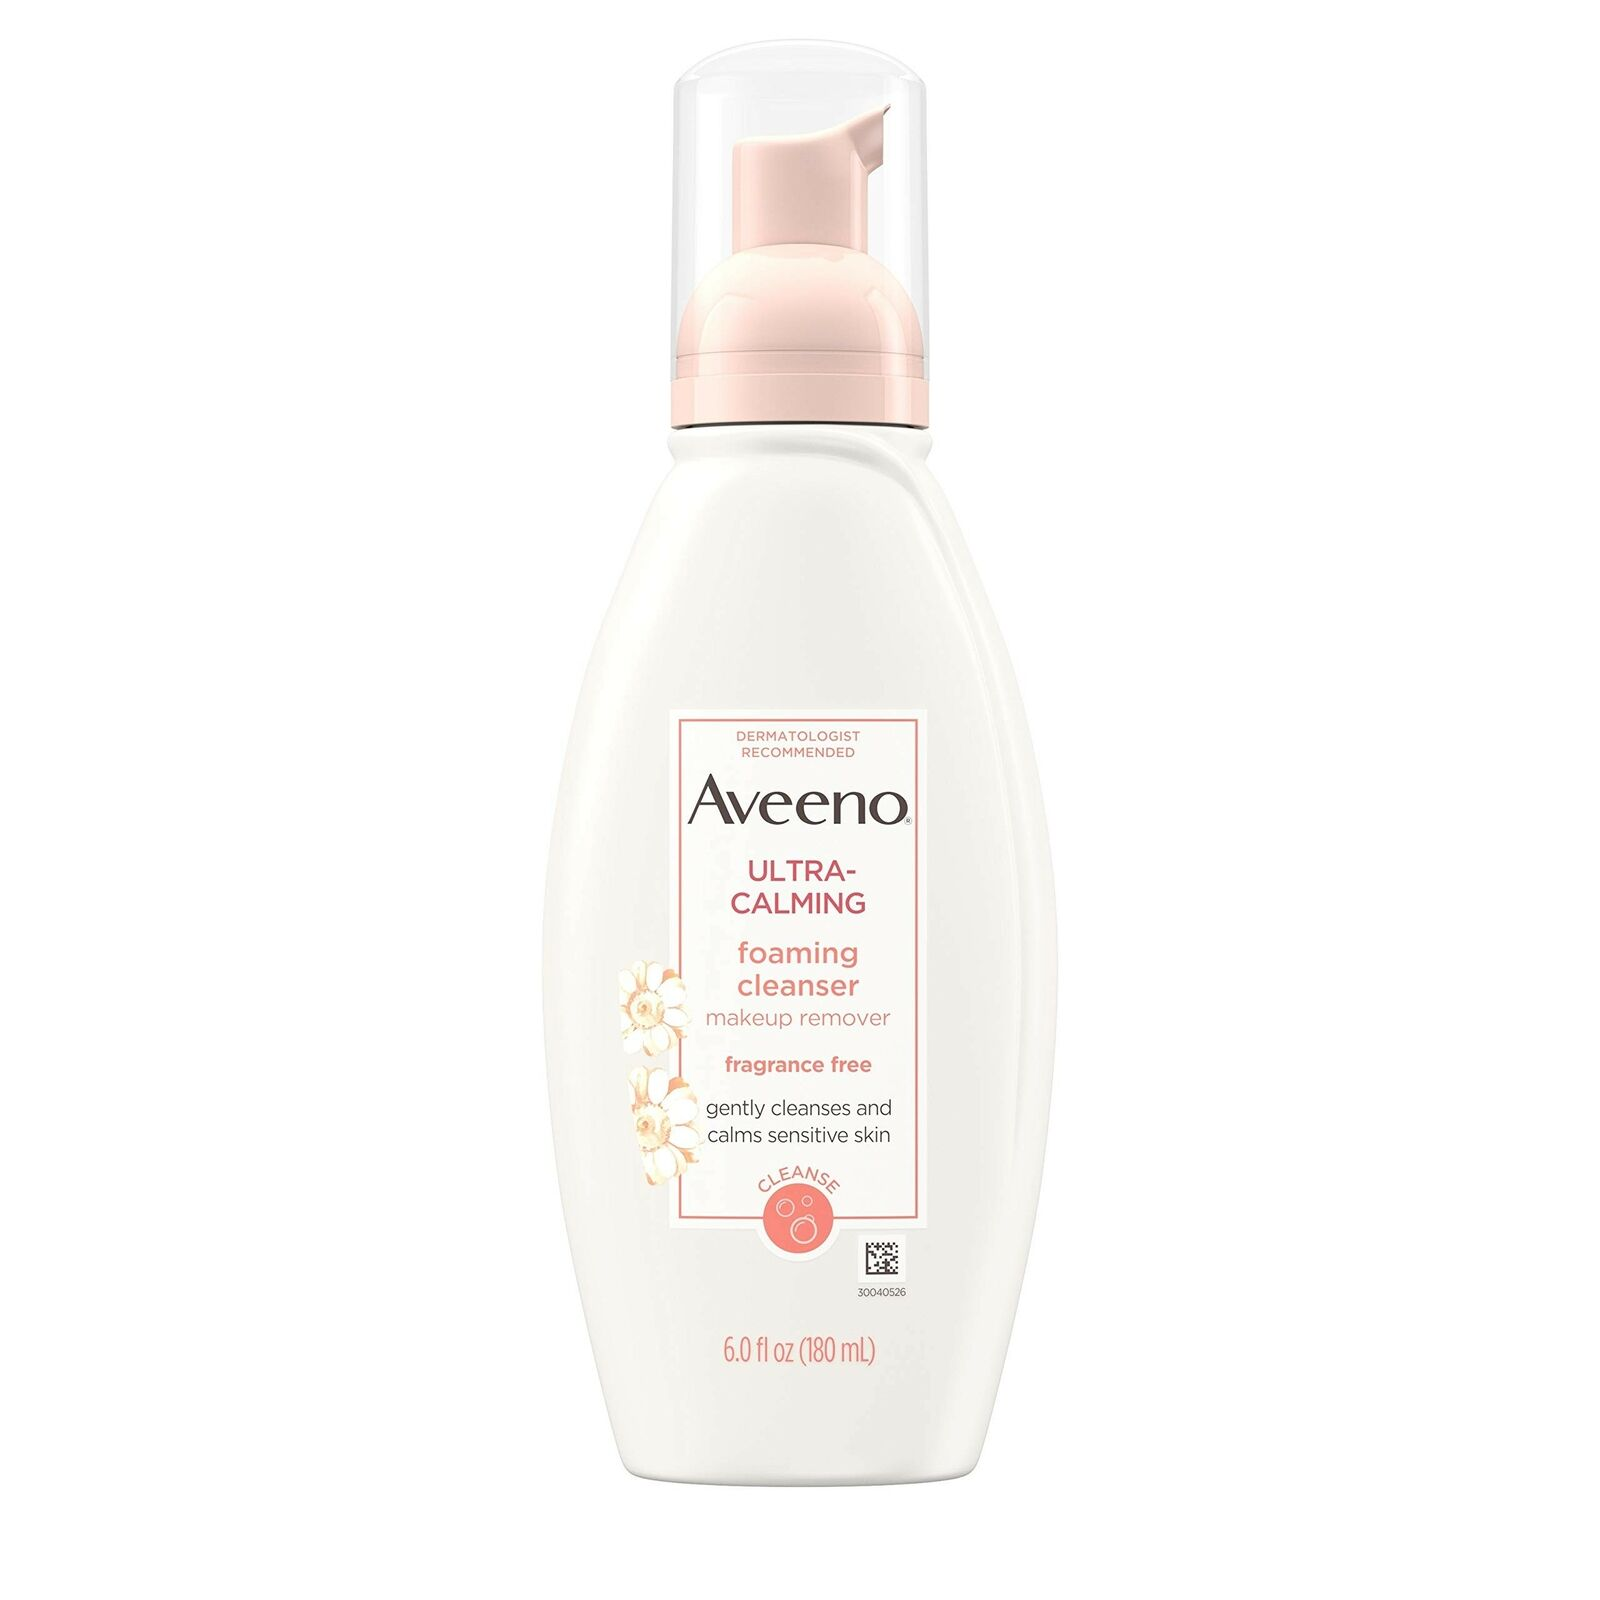 Aveeno Ultra-calming Foaming Cleanser And Makeup Remover For Dry, Sensitive S...